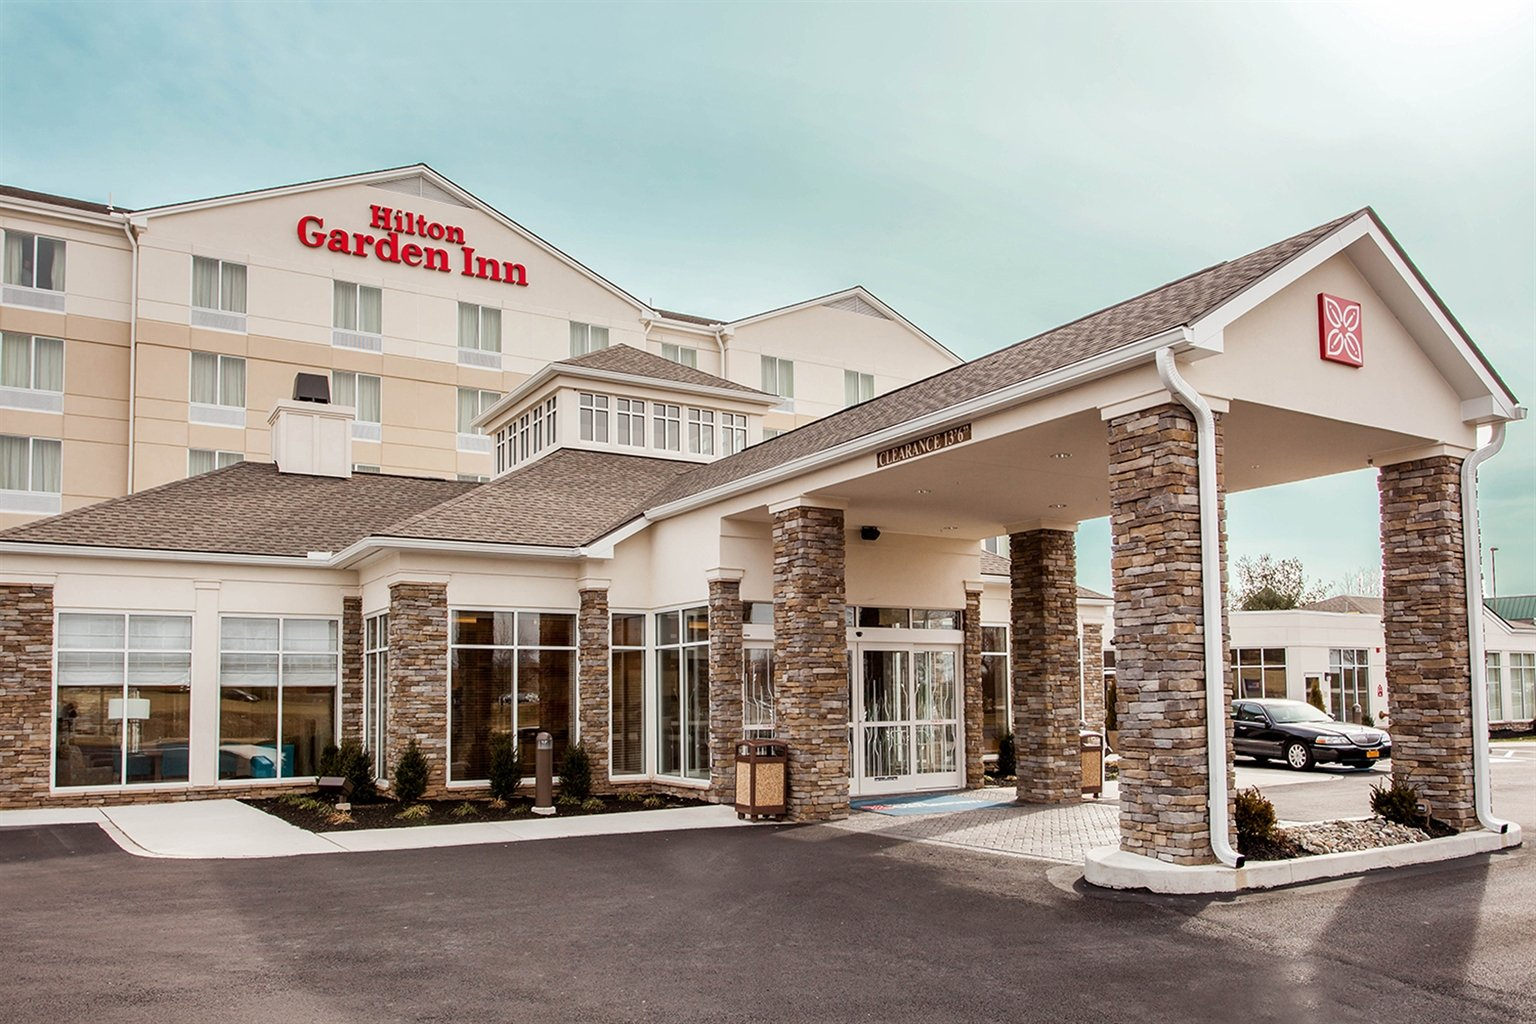 Hilton garden inn martinsburg wv hotel reviews prices Hilton garden inn martinsburg wv